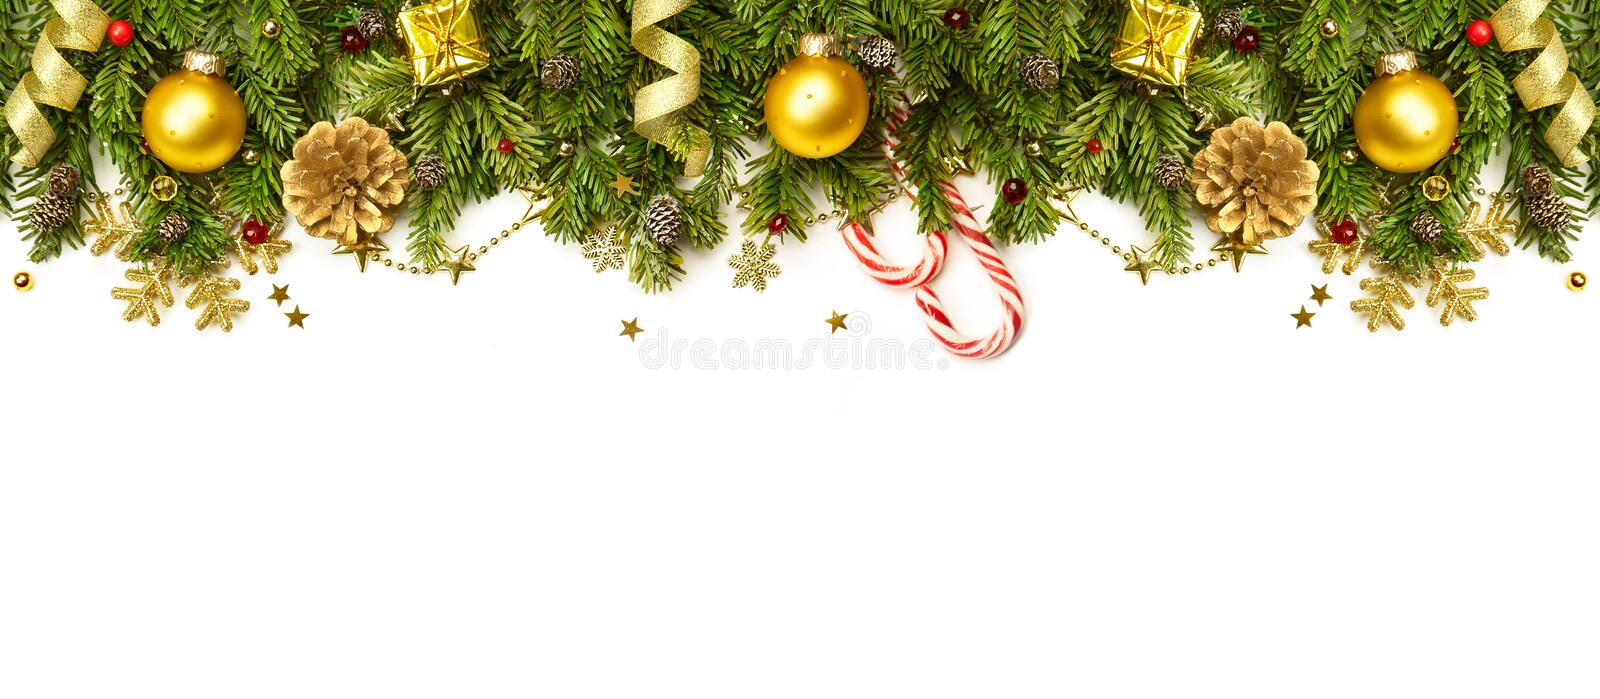 Download Christmas Decorations Border Isolated On White Background Stock Image - Image of banner, gift: 46174527